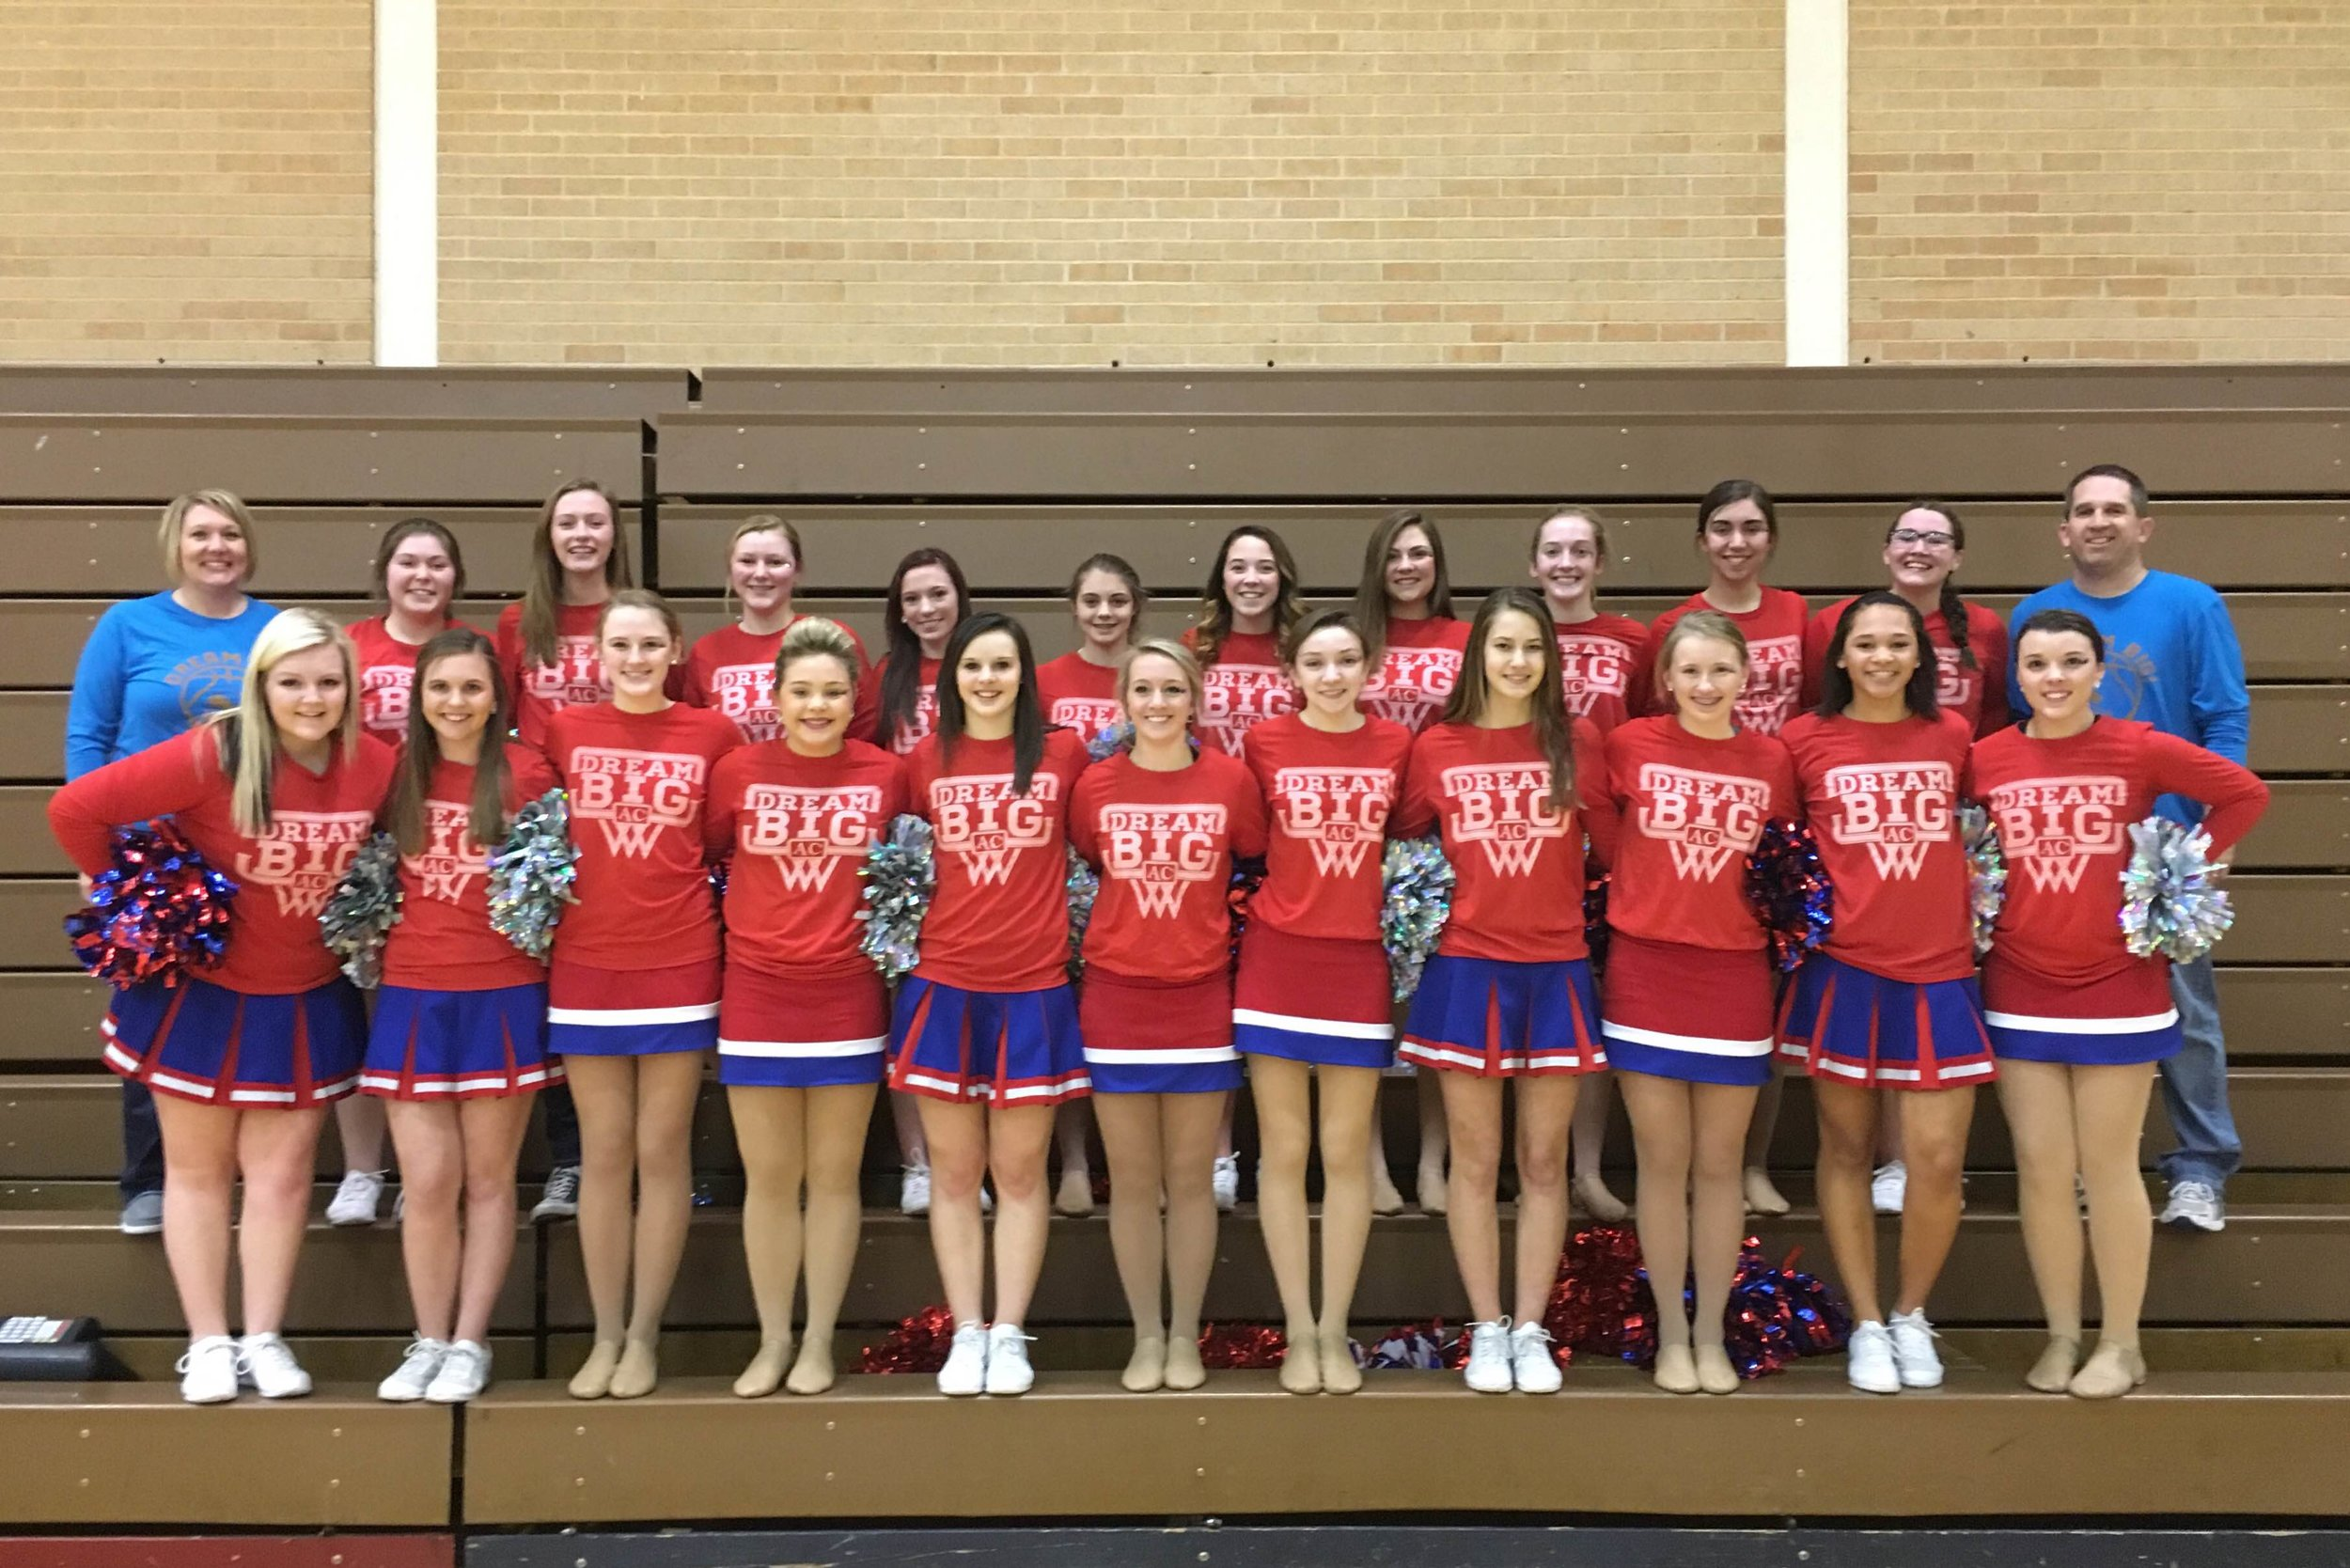 """The Adams Central Cheerleaders helping spread awareness by wearing their """"Dream Big"""" shirts during the outing too!!"""